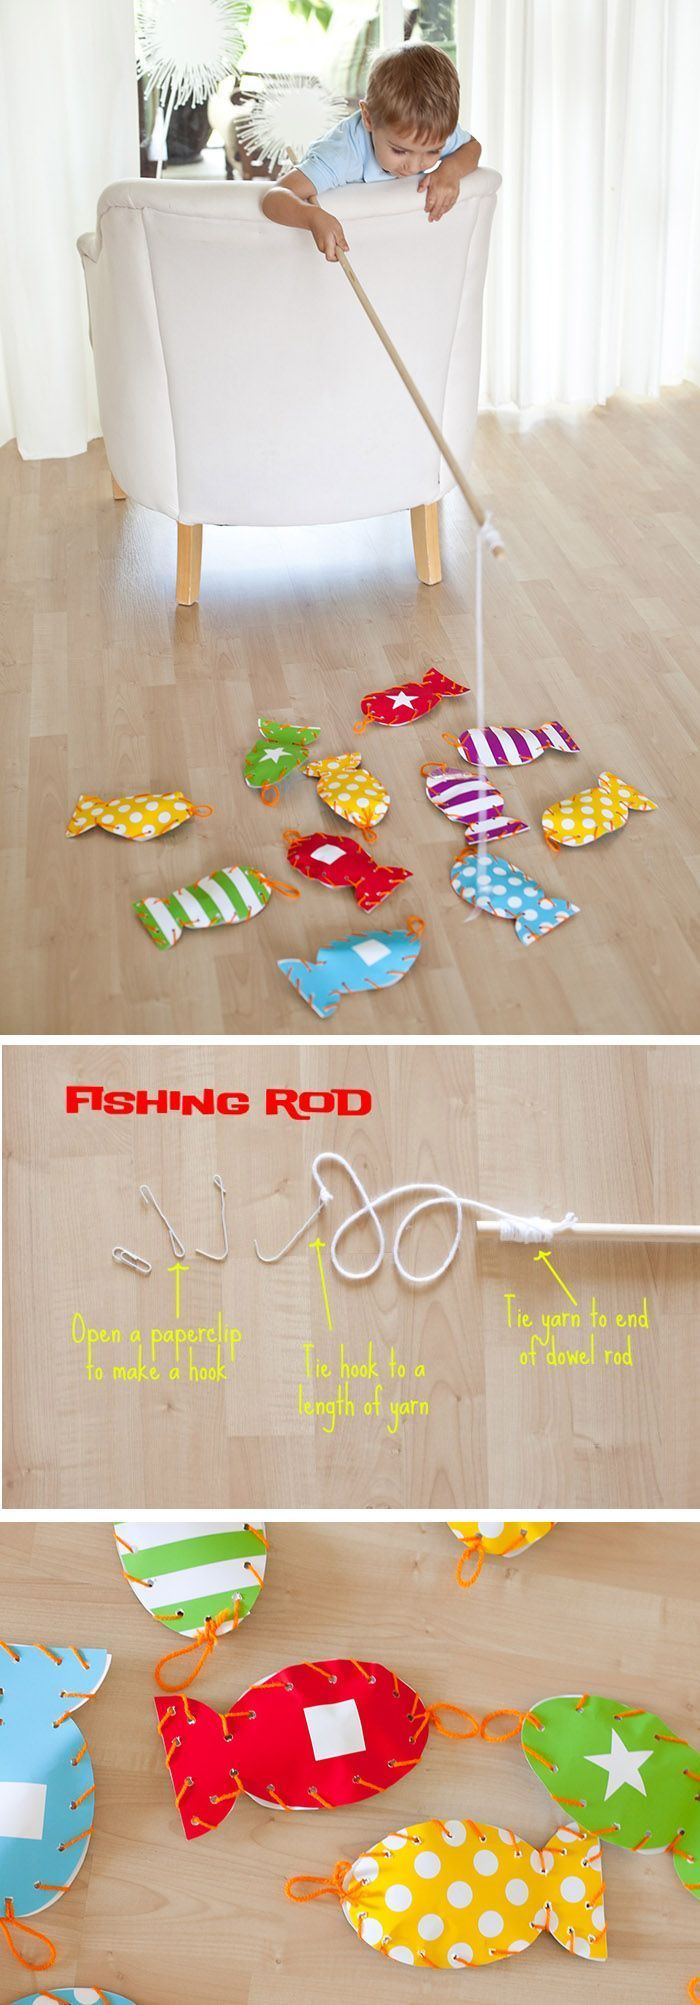 25 best ideas about fishing games for kids on pinterest for Gone fishing game